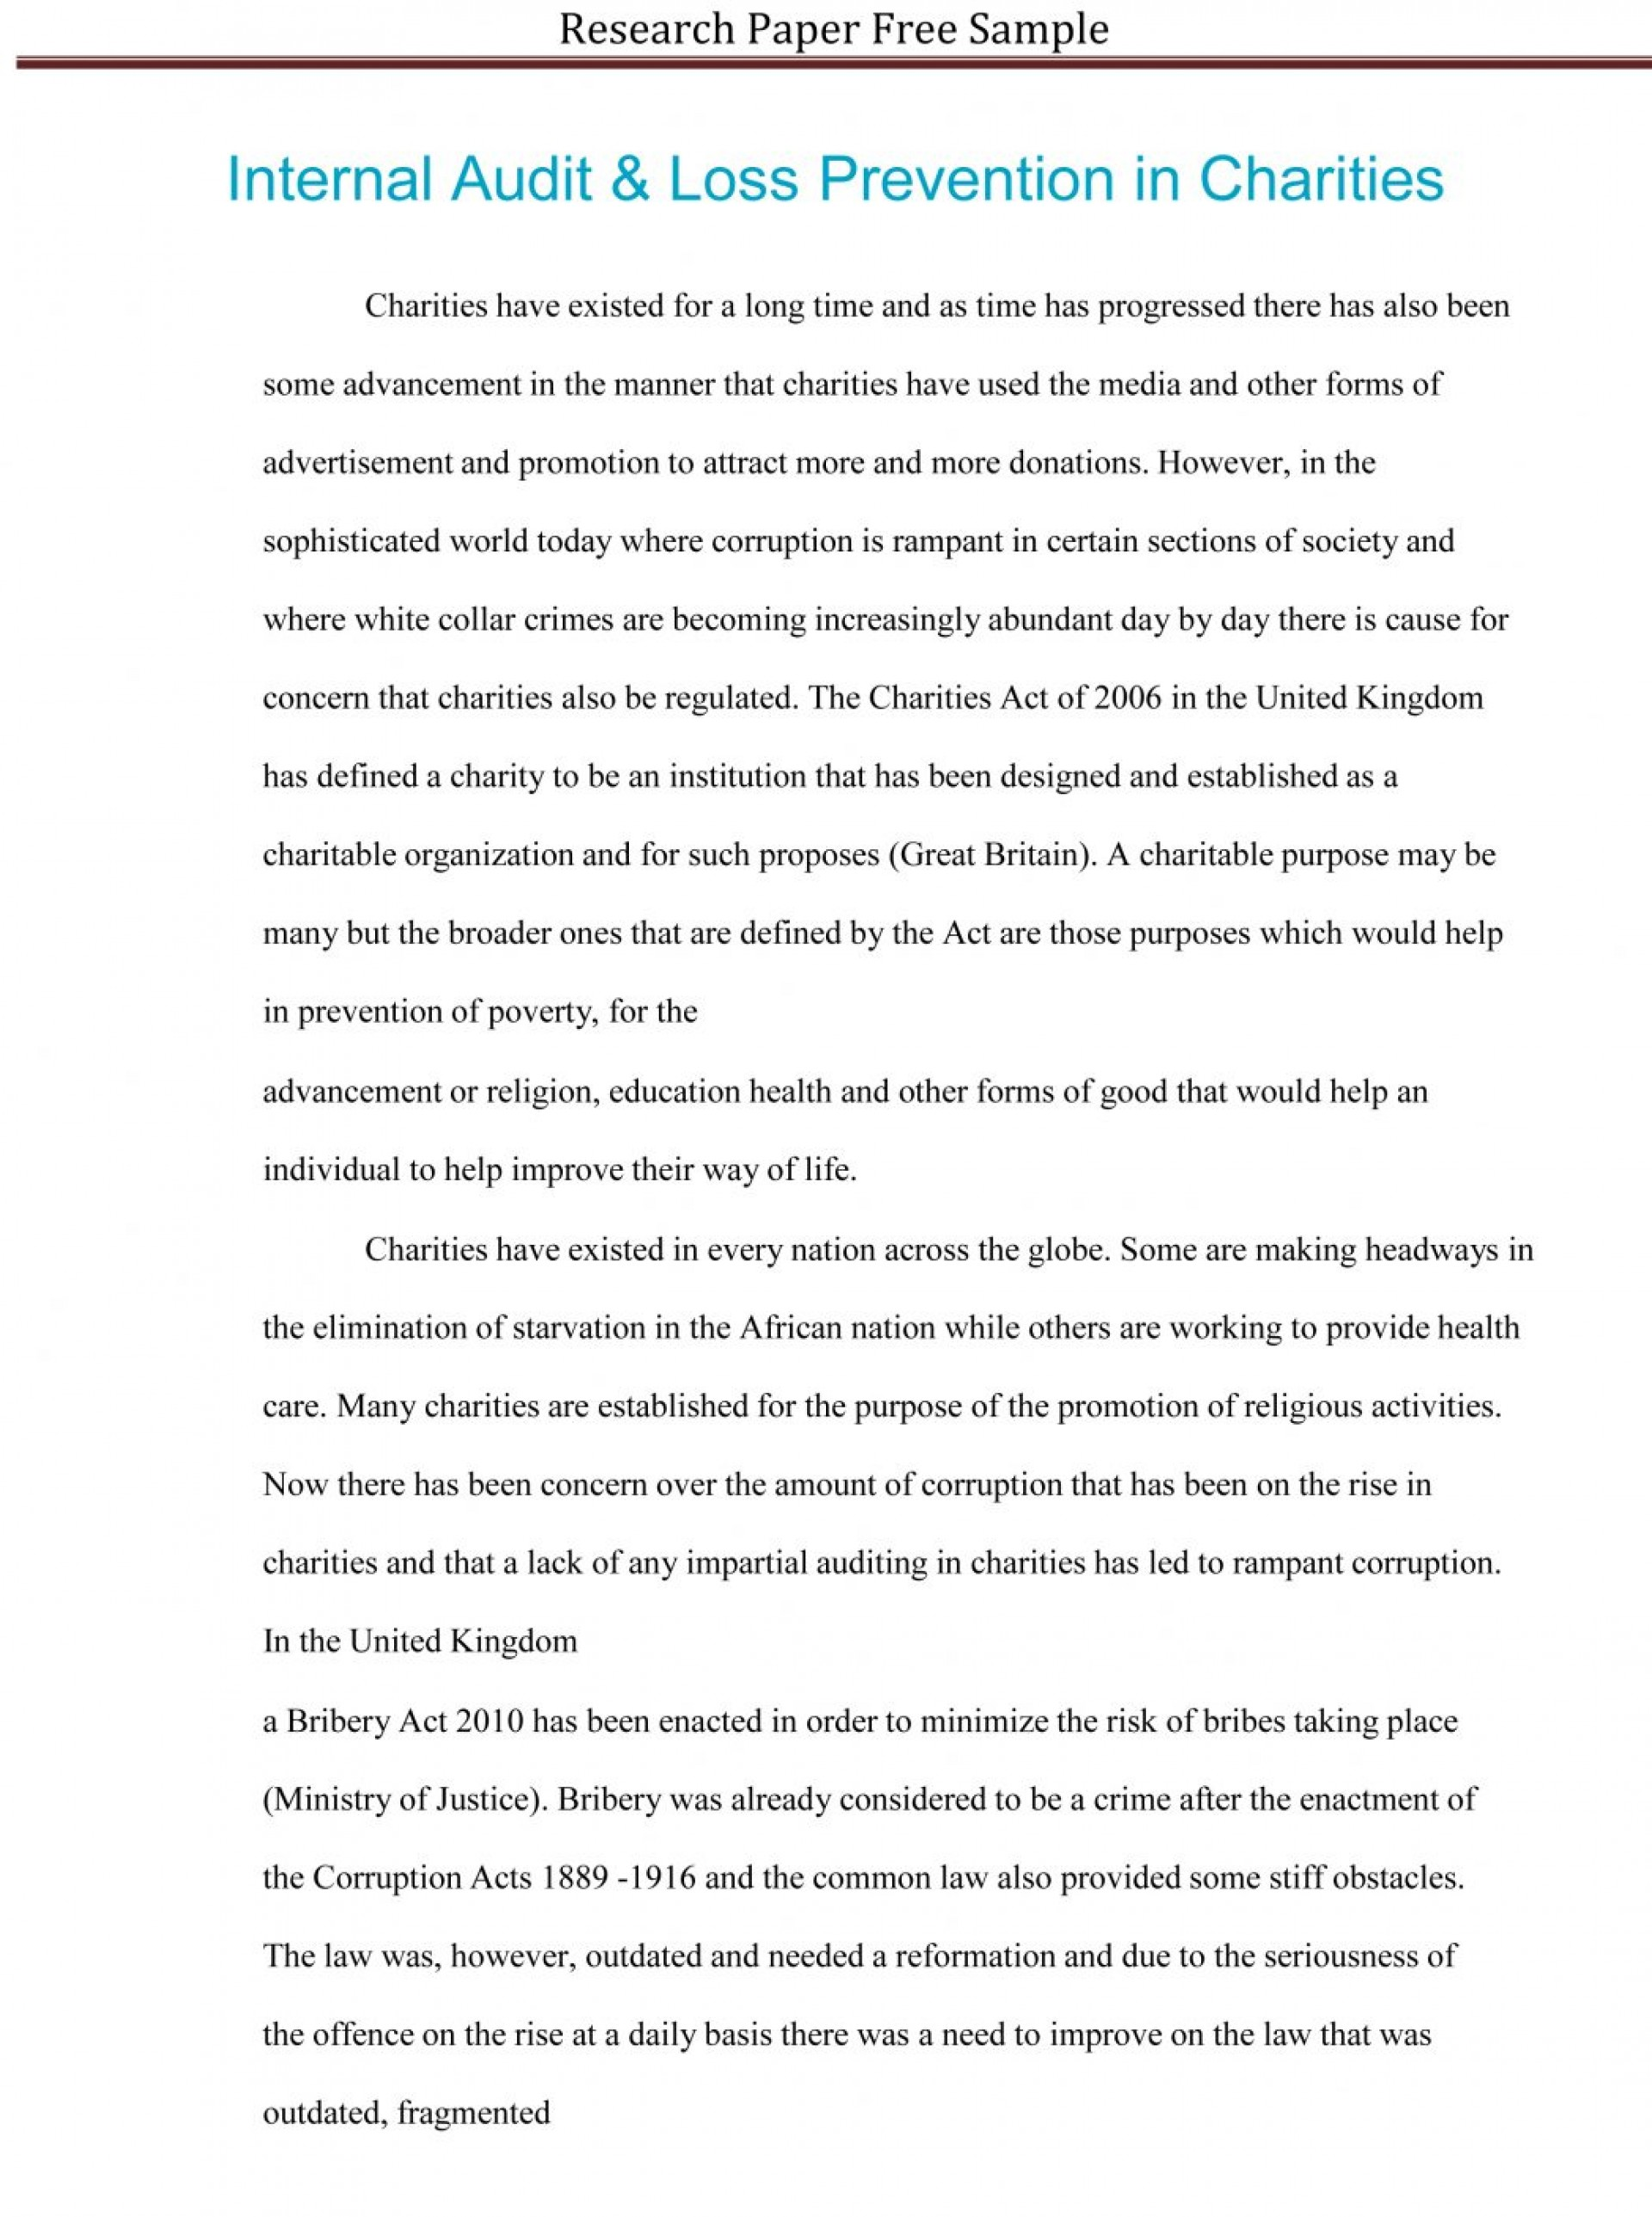 003 Research Paper Essay Example Examples Writing Based Informative About Language S Quizlet Will Teach You Fundamentally Is Challenging Your When Why Synthesizing Sources Important Introduction Unusual Sample Pdf Tagalog Format Apa Mla 1920